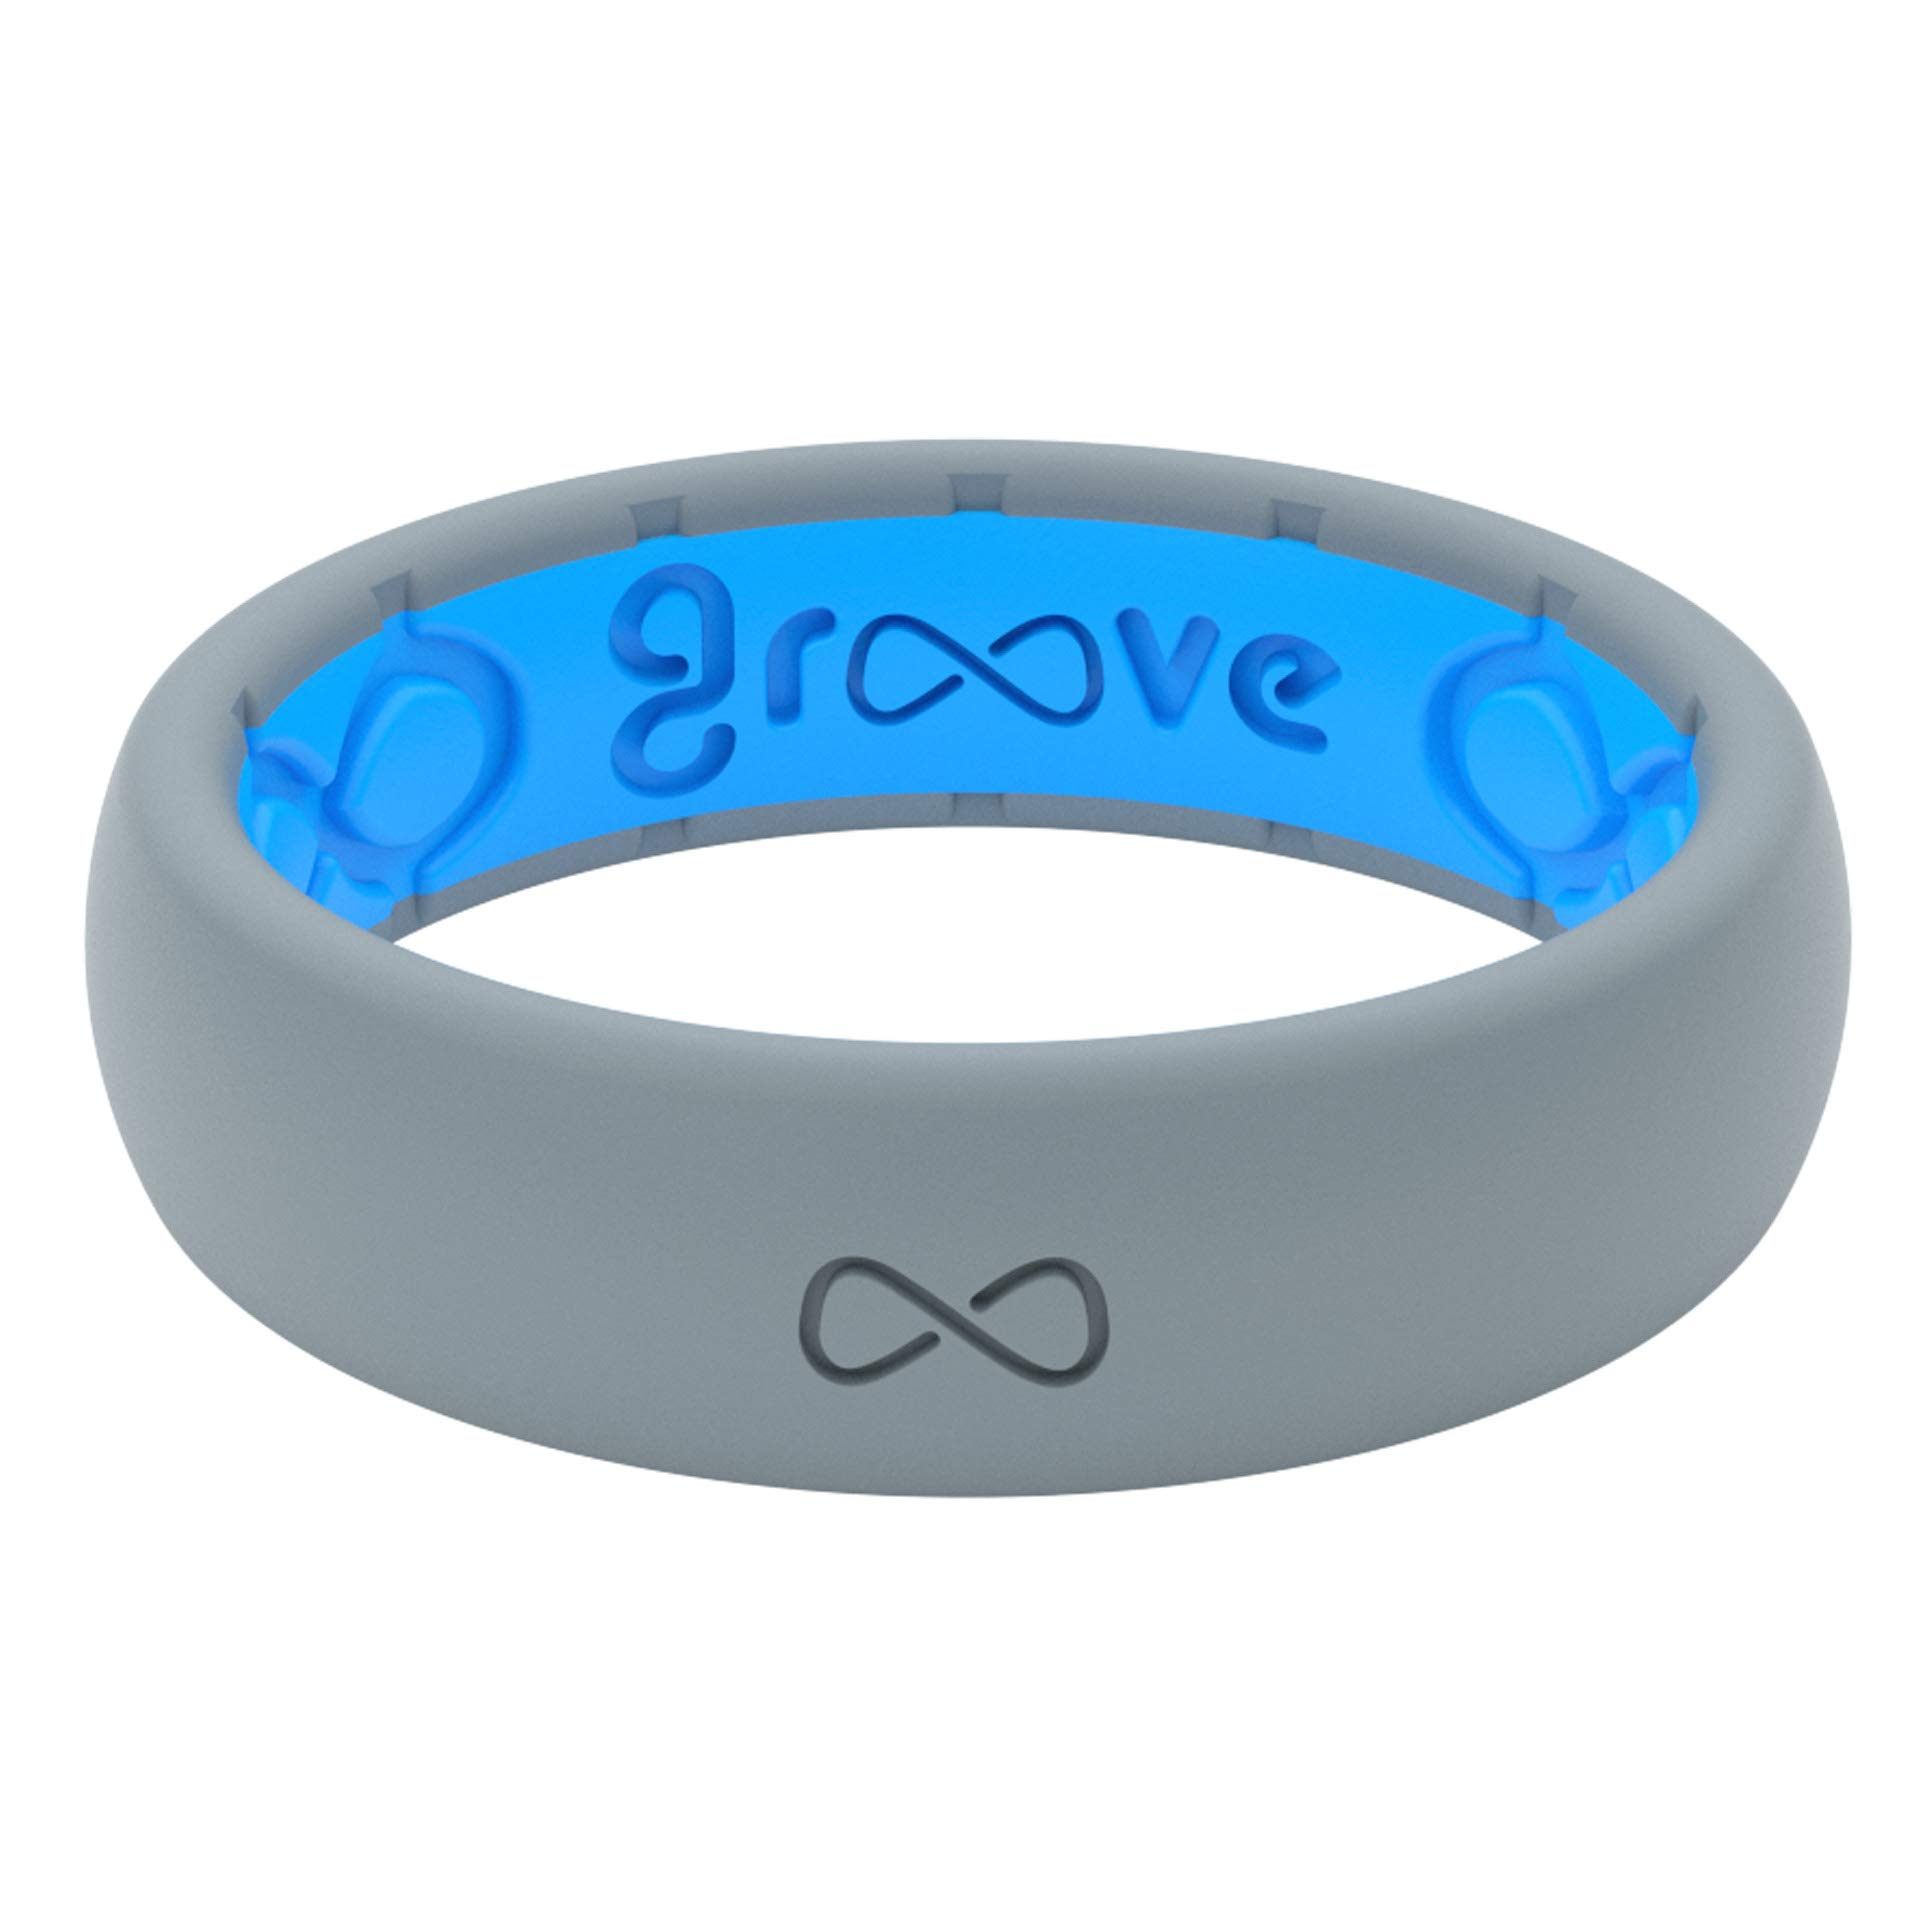 Groove Life - Silicone Ring for Men and for Women Wedding or Engagement Functional Rubber Band with, Breathable Grooves, Comfort Fit, and Durability - Thin Solid Storm Grey Size 4